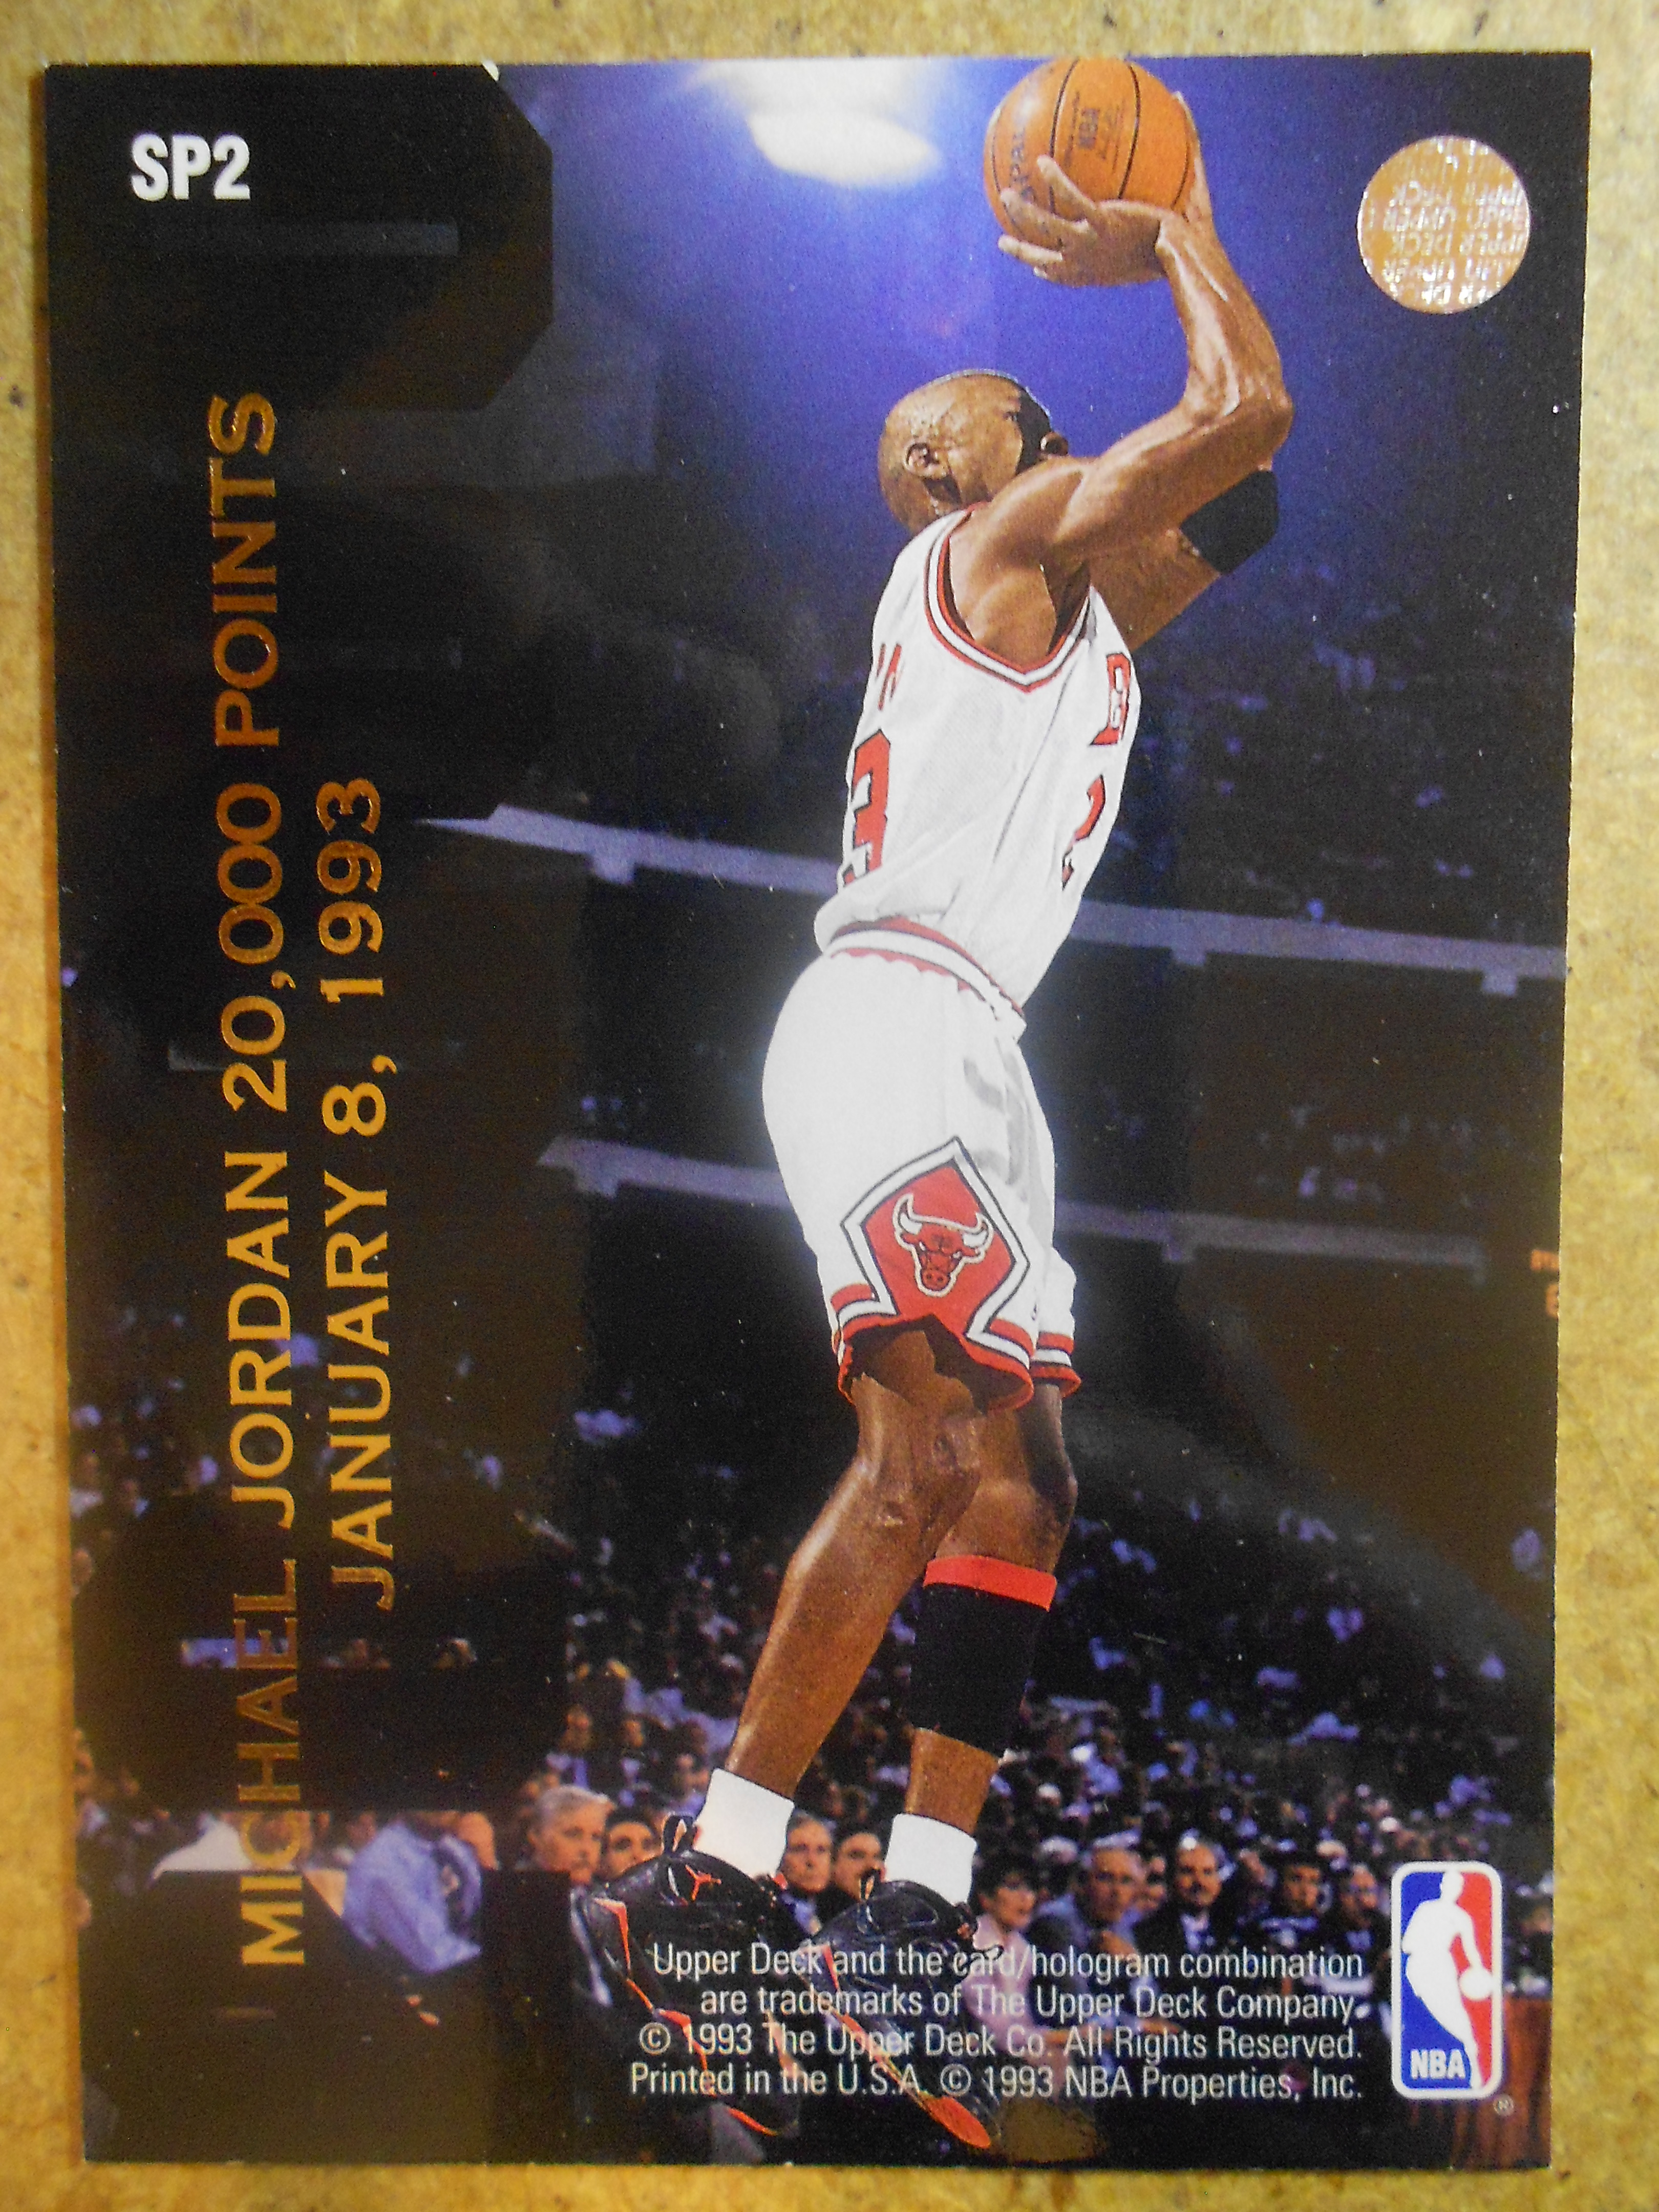 1992-93 Upper Deck #SP2 20,000 Points/Dominique Wilkins Nov. 6, 1992/Michael Jordan Jan. 8, 1993